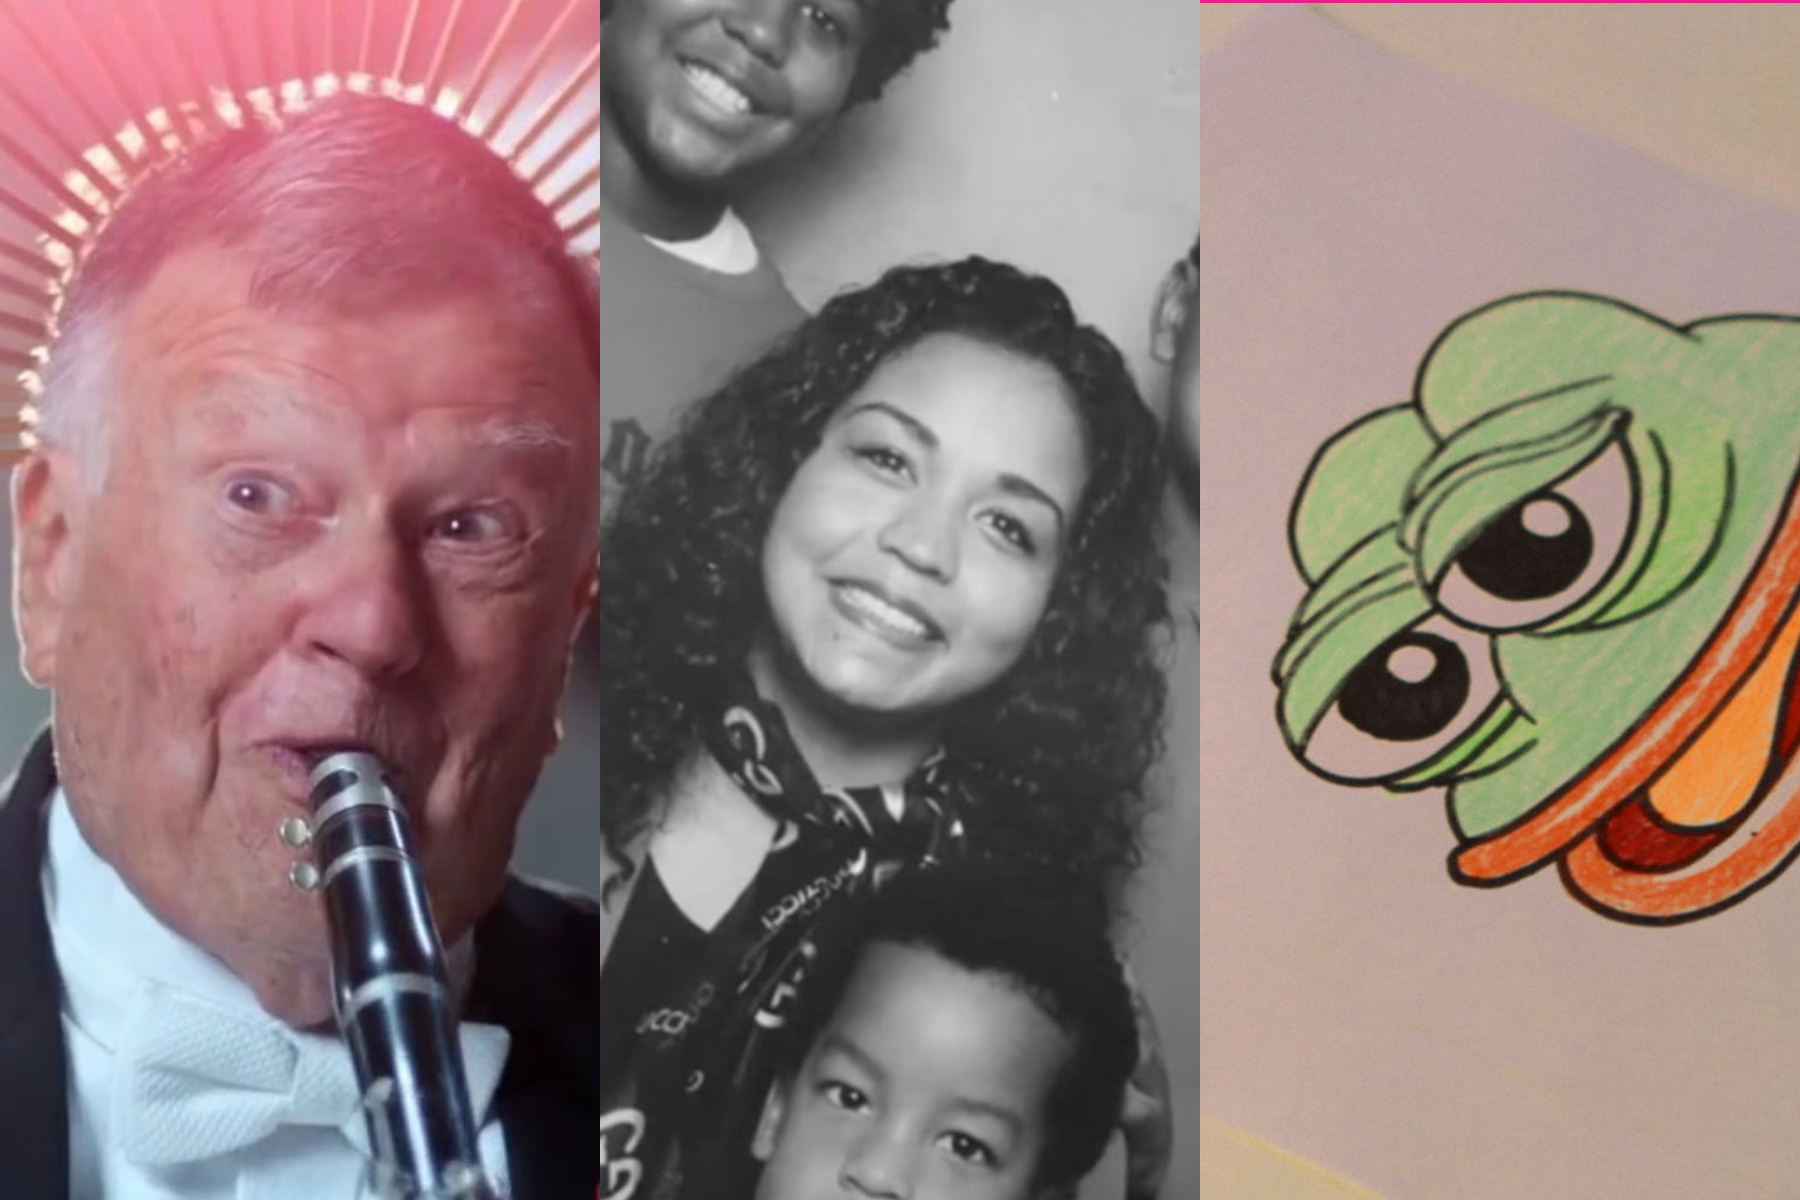 A triptych with images from three documentaries: An older man, a woman with her children, and a cartoon frog.